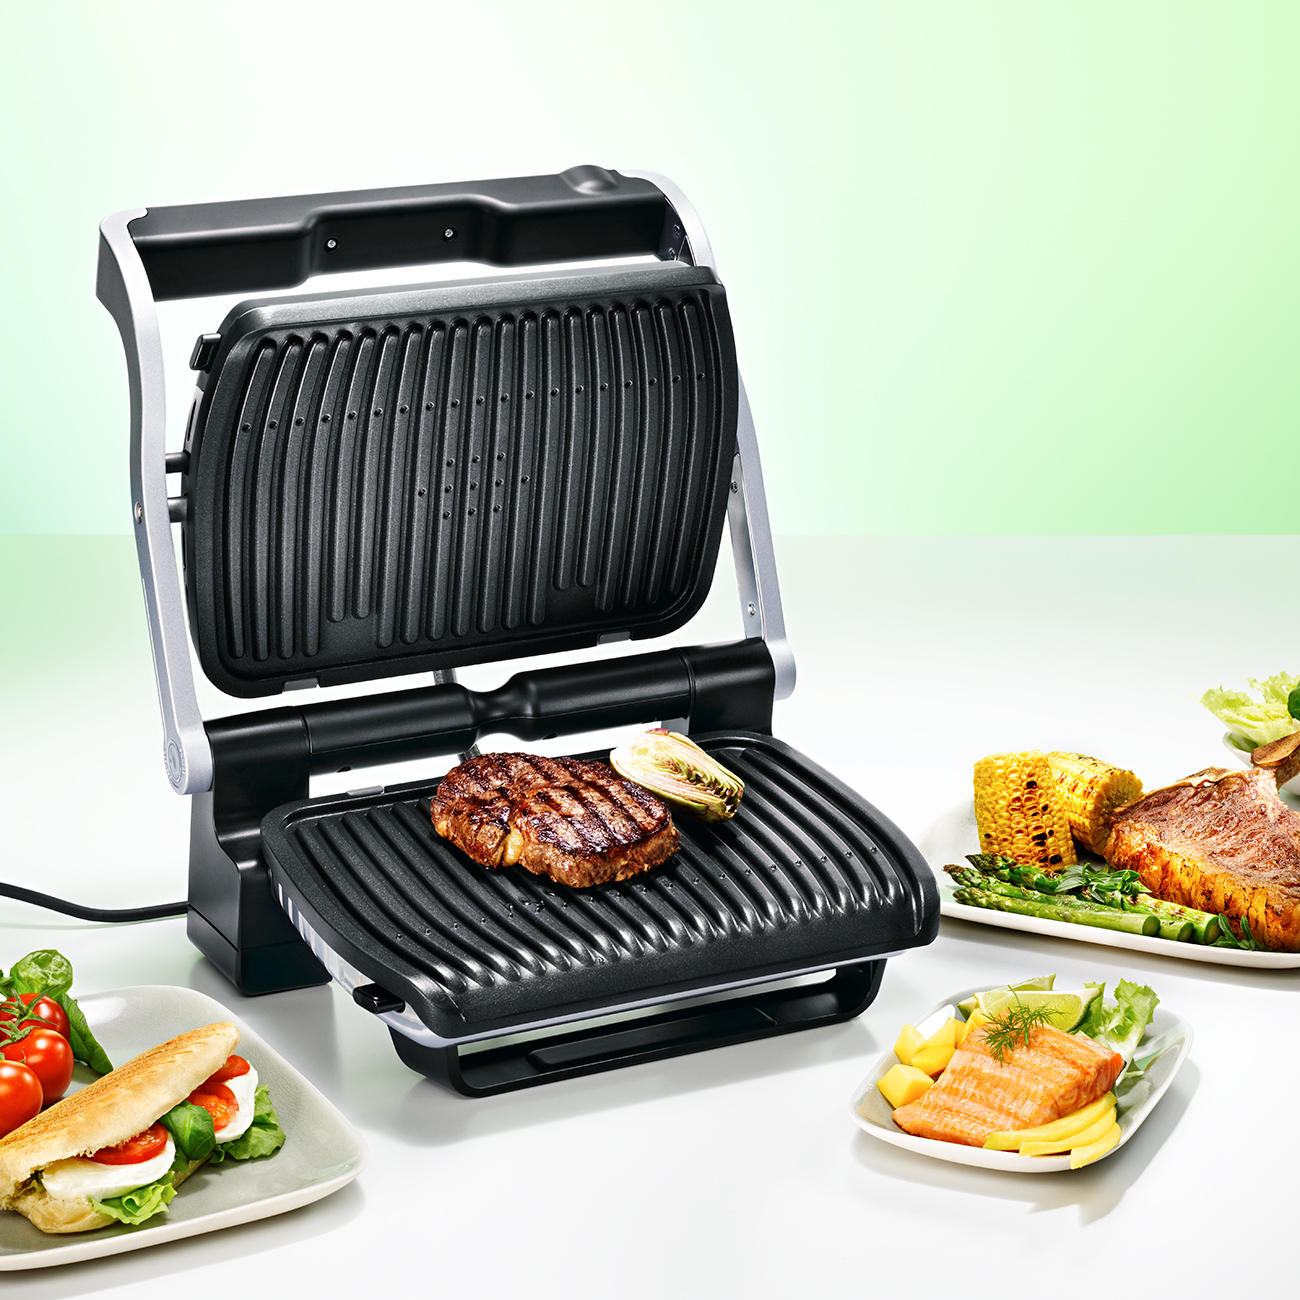 tefal optigrill gc 702d grill elektrisch kaufen. Black Bedroom Furniture Sets. Home Design Ideas